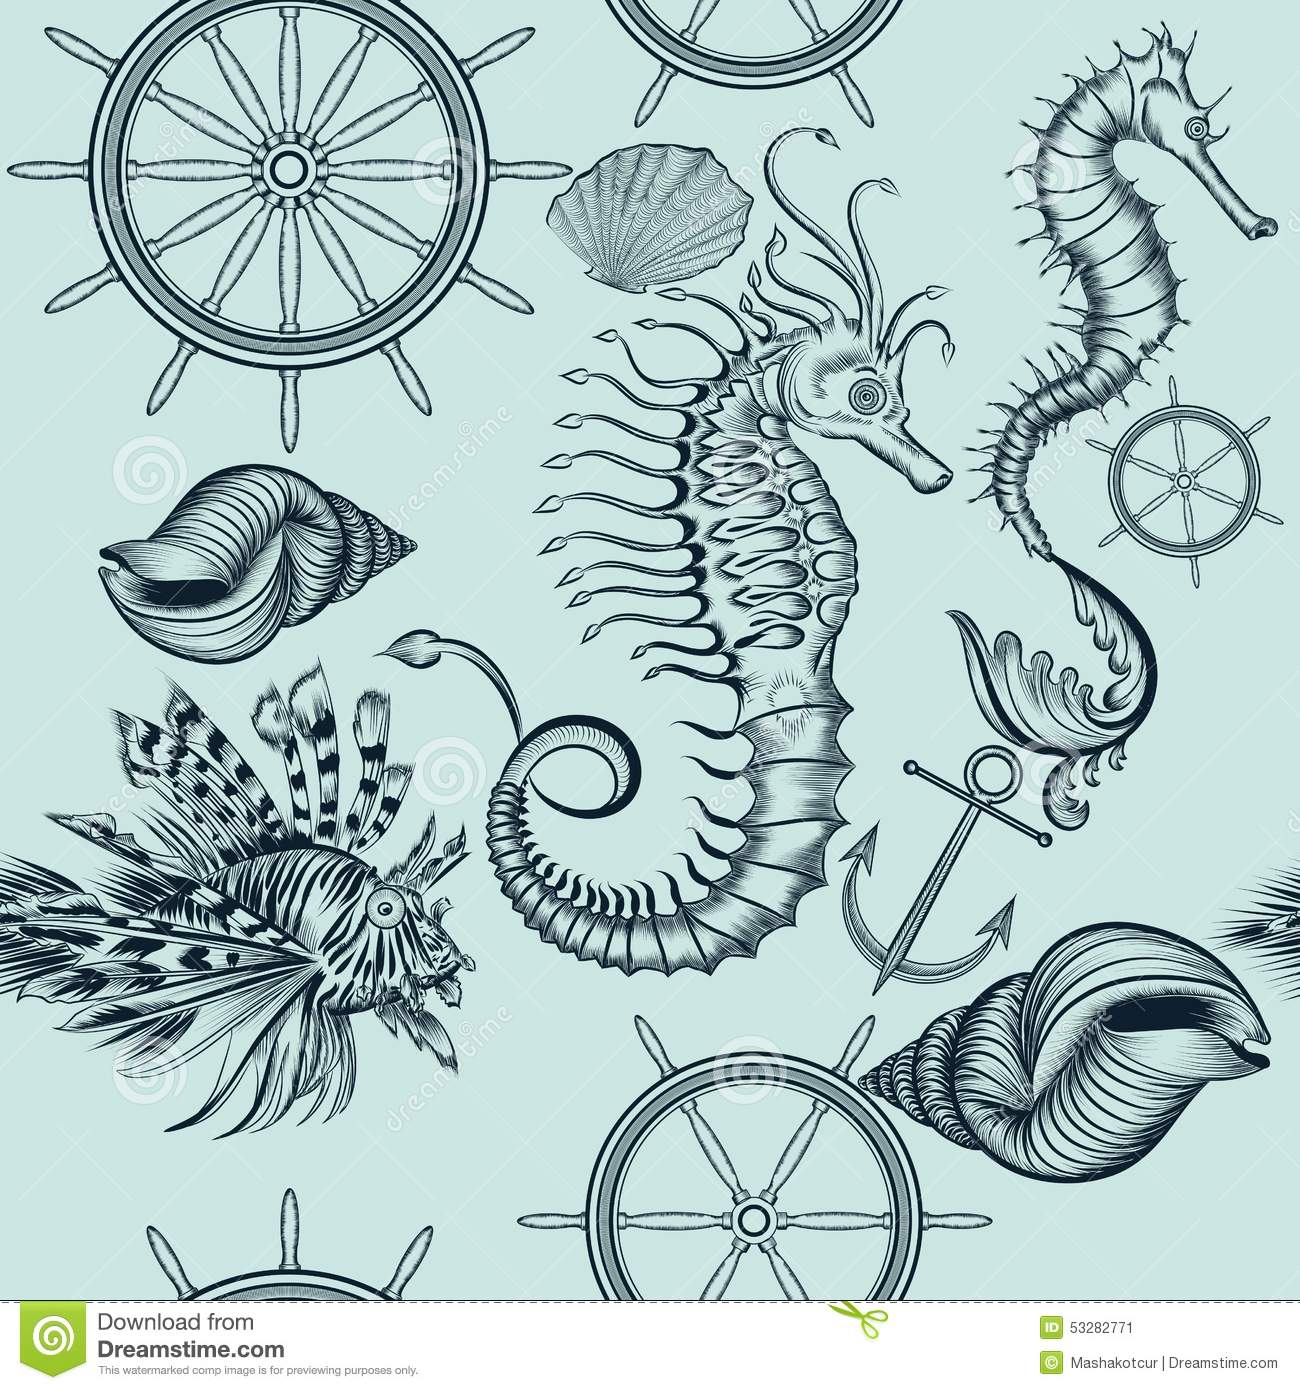 Cute Anchor Wallpapers Vintage Seamless Wallpaper Pattern With Sea Animals Stock